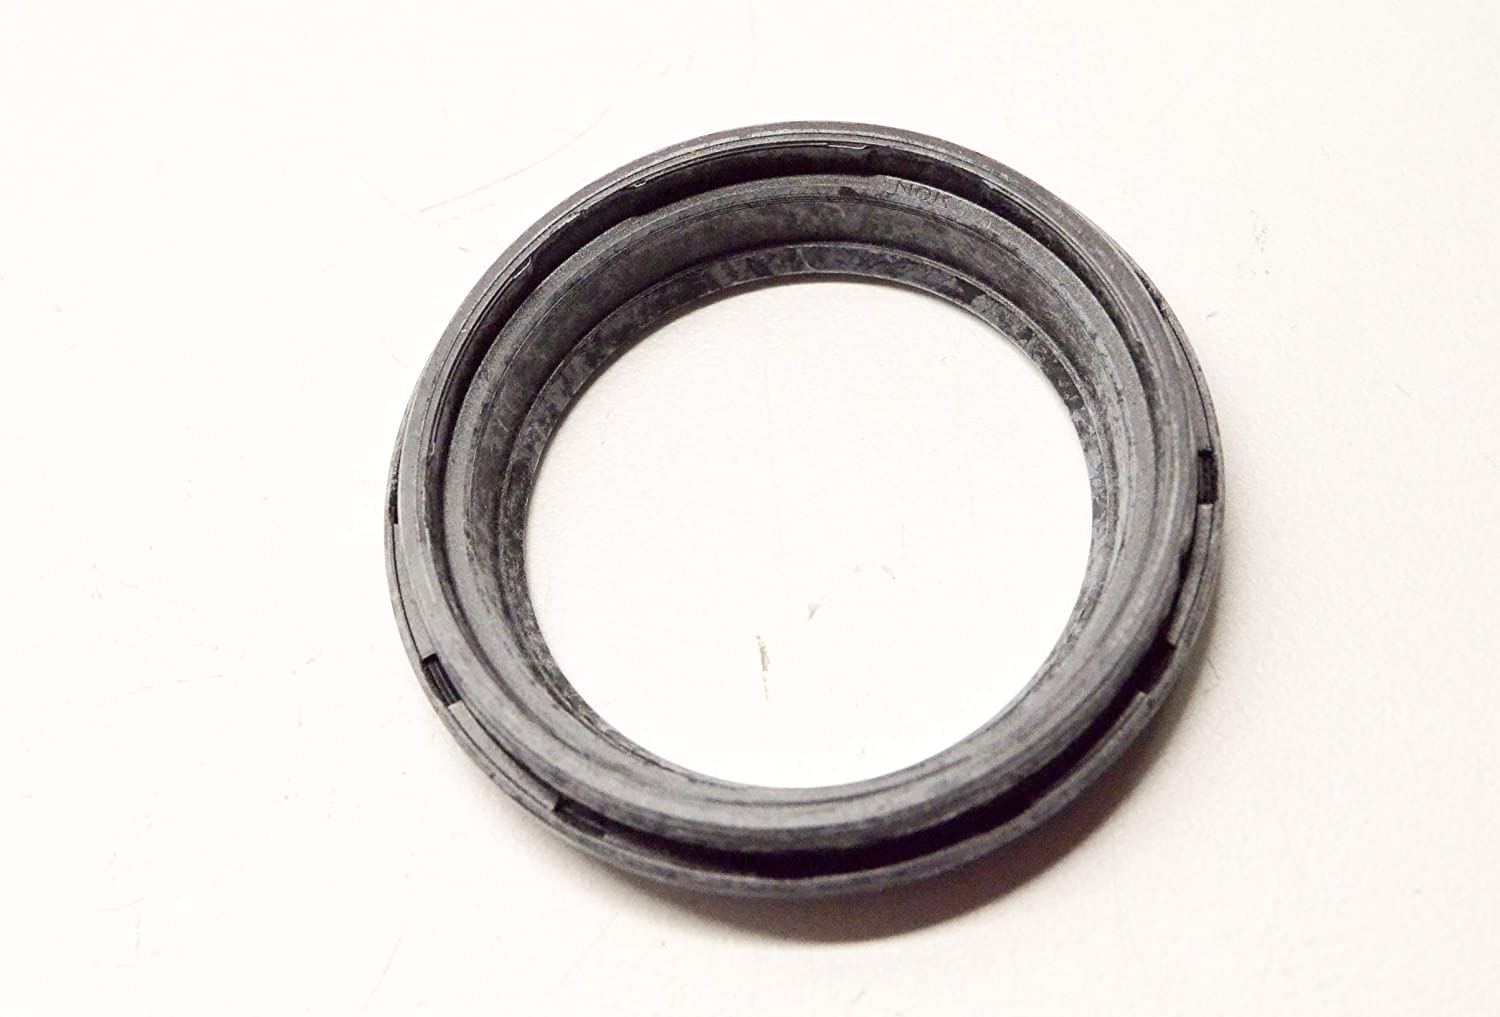 Yamaha 4KG-23144-00-00 Dust Seal Supersedes 4PU-23144-00-00